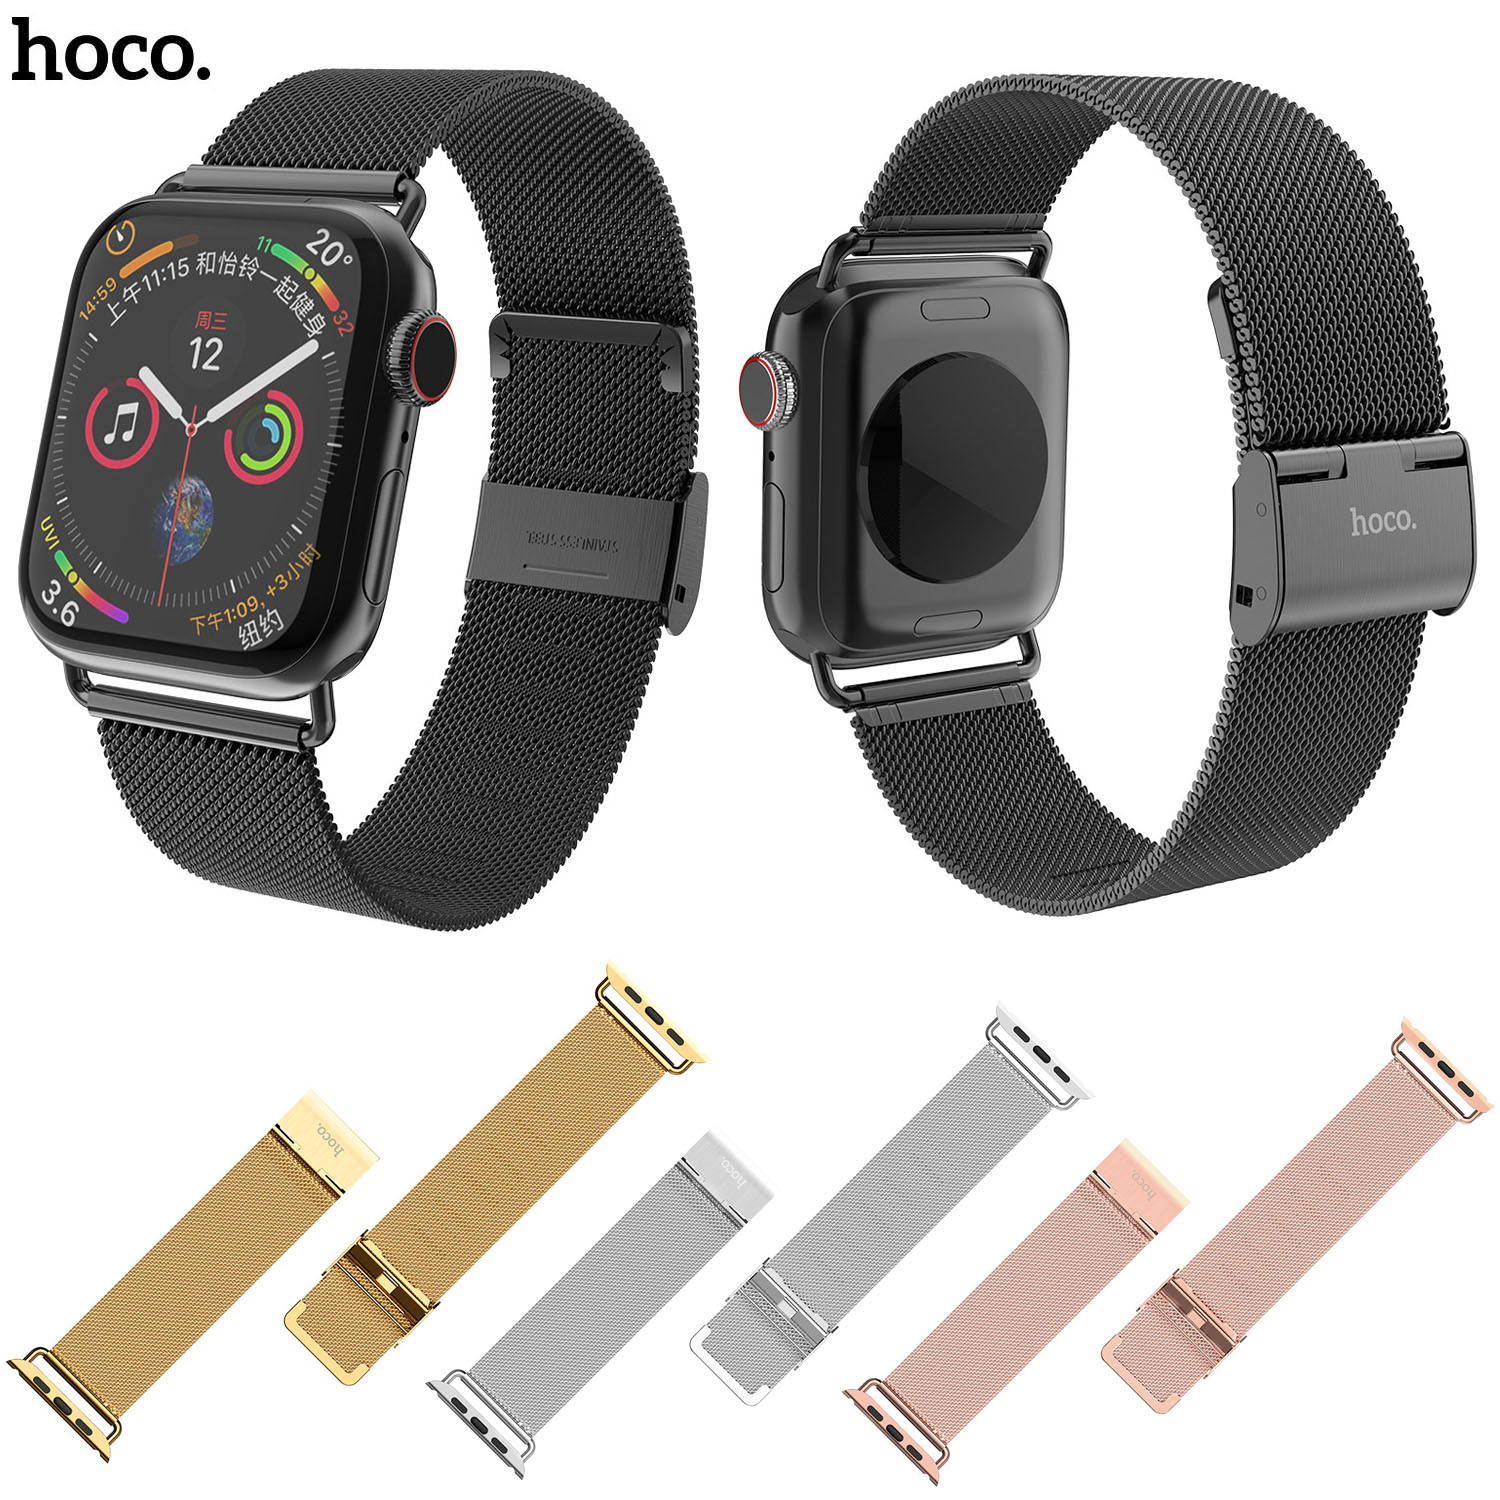 HOCO Milanese Loop Stainless Steel Strap For Apple Watch Series 1 2 3 4 5 Band Replace Bracelet For IWatch 44/42mm 40/38mm Bands